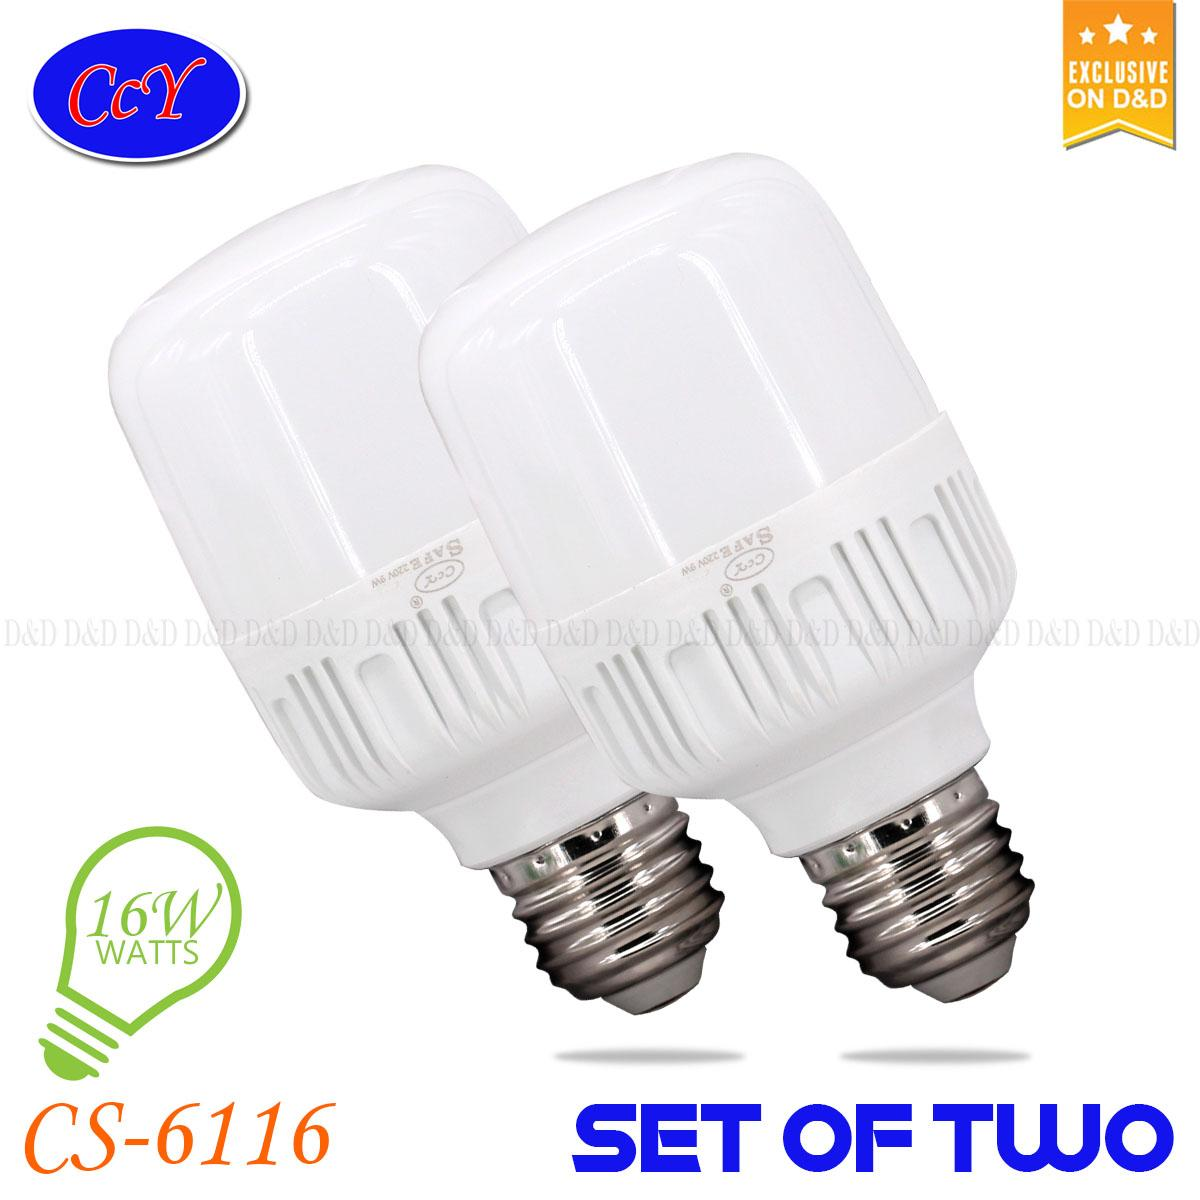 Light Bulbs For Sale Led Prices Brands Review In 220v Ac Lamp Touch Dimmer Ddccy Safe 16 Watts Set Of Two Bulb Energy Savinglong Durationhigh